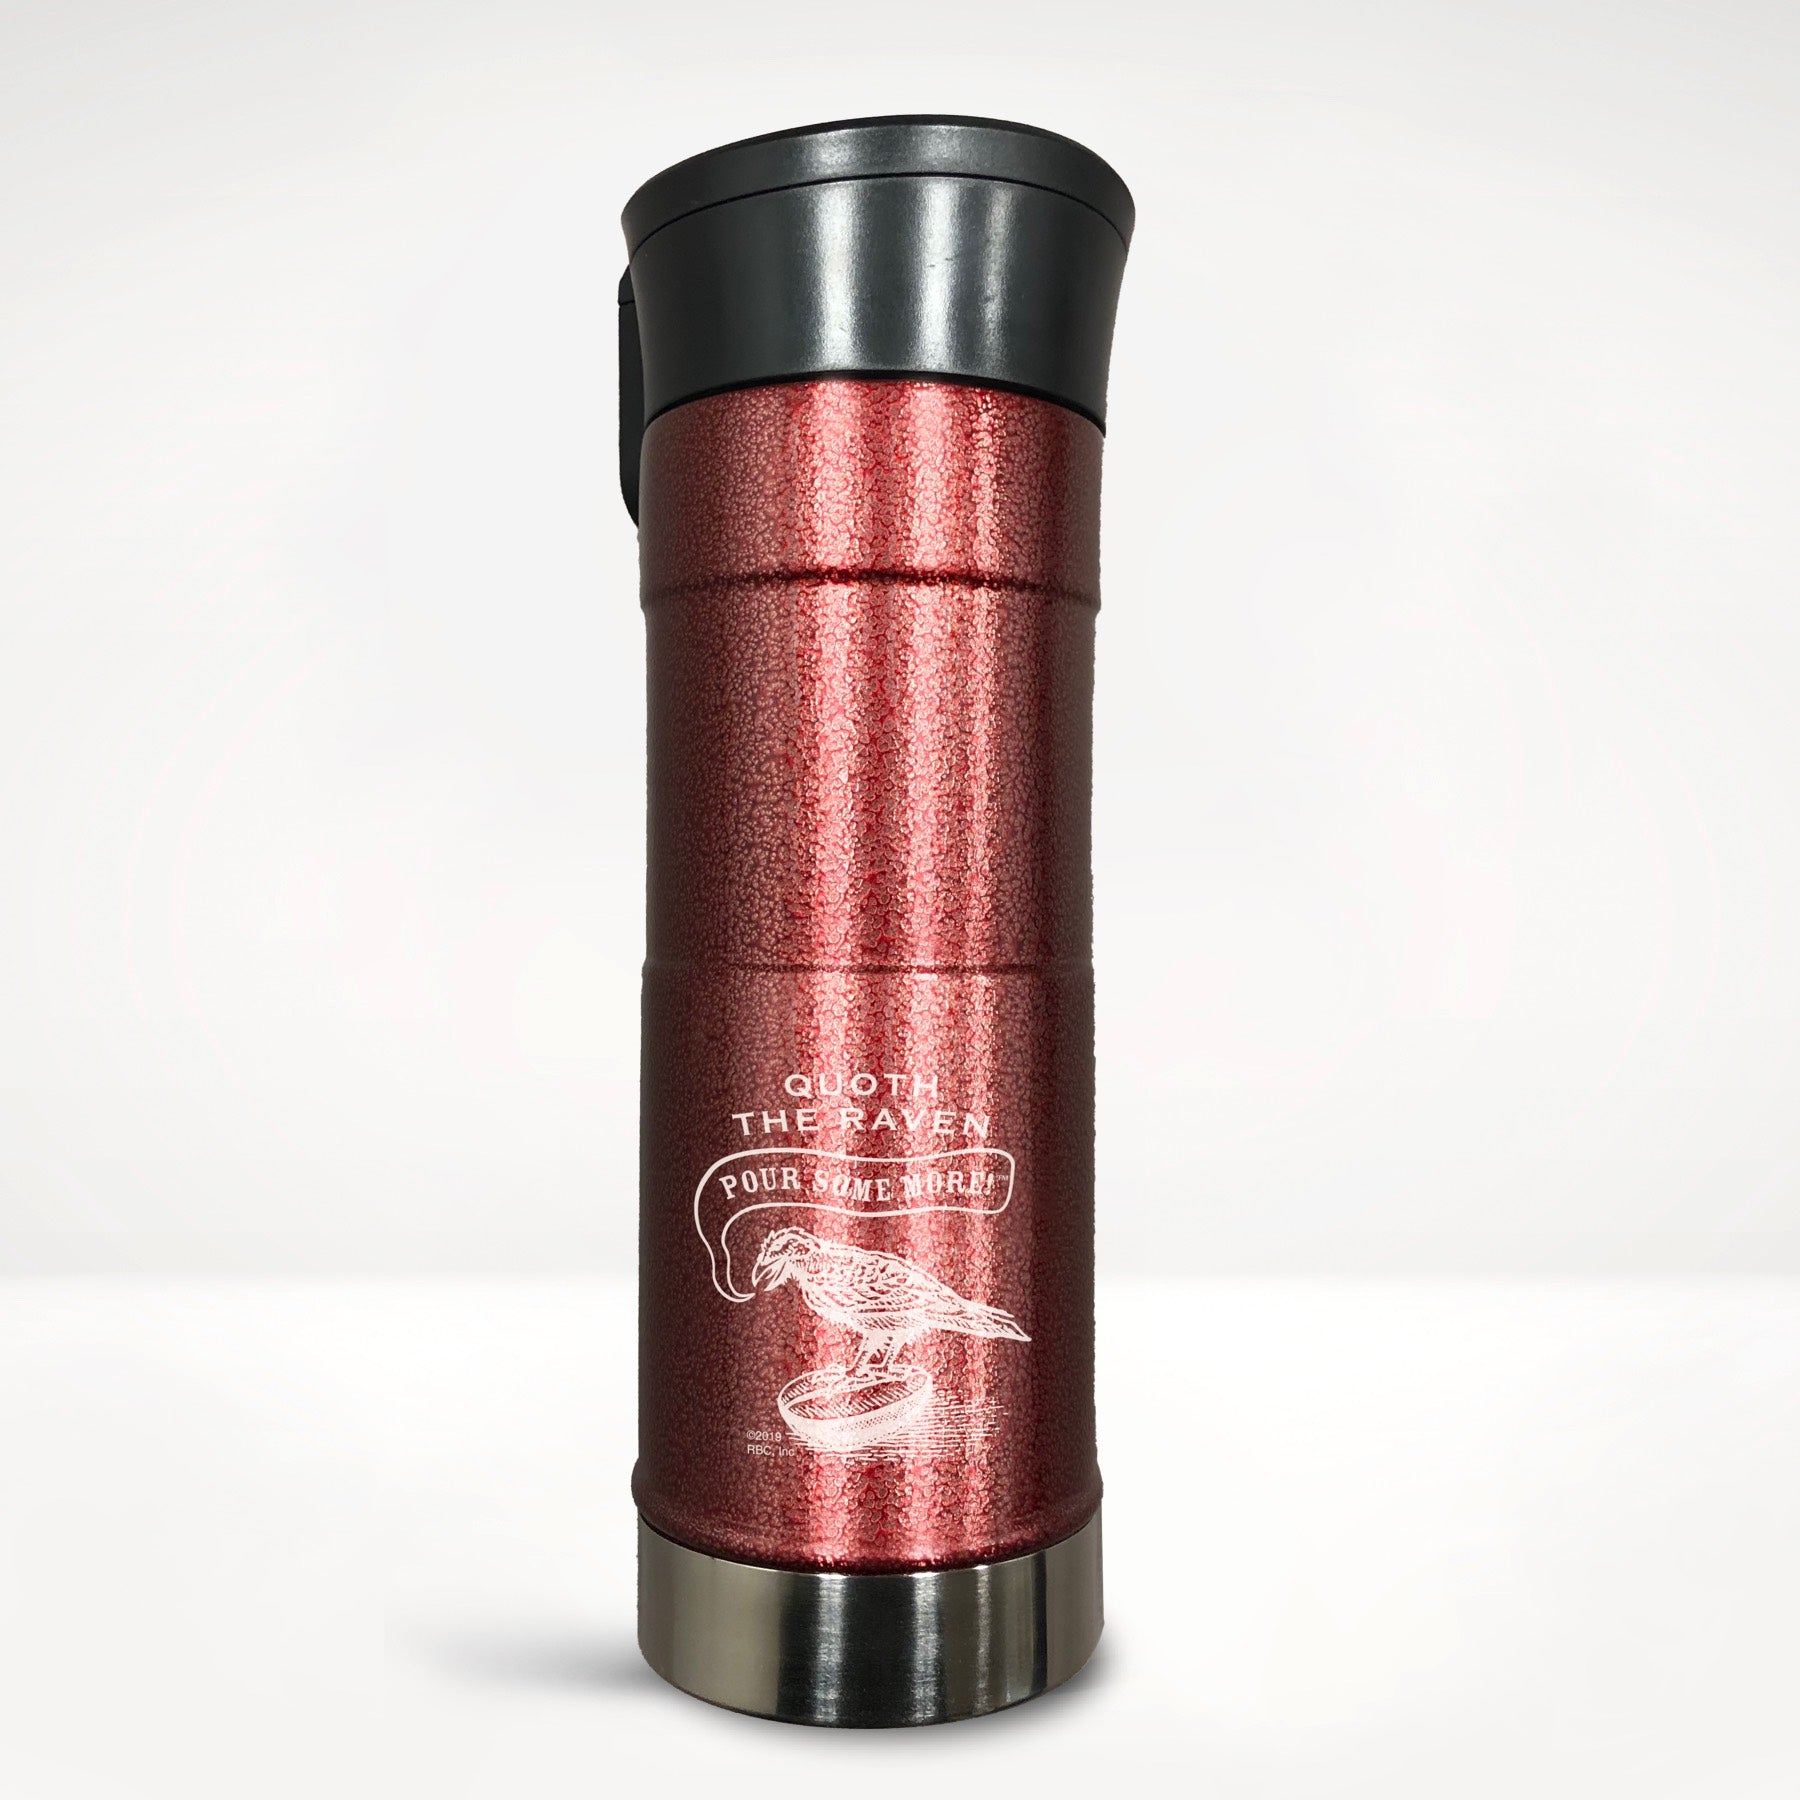 Quoth the Raven, Pour Some More™ Stainless Steel Travel Tumbler